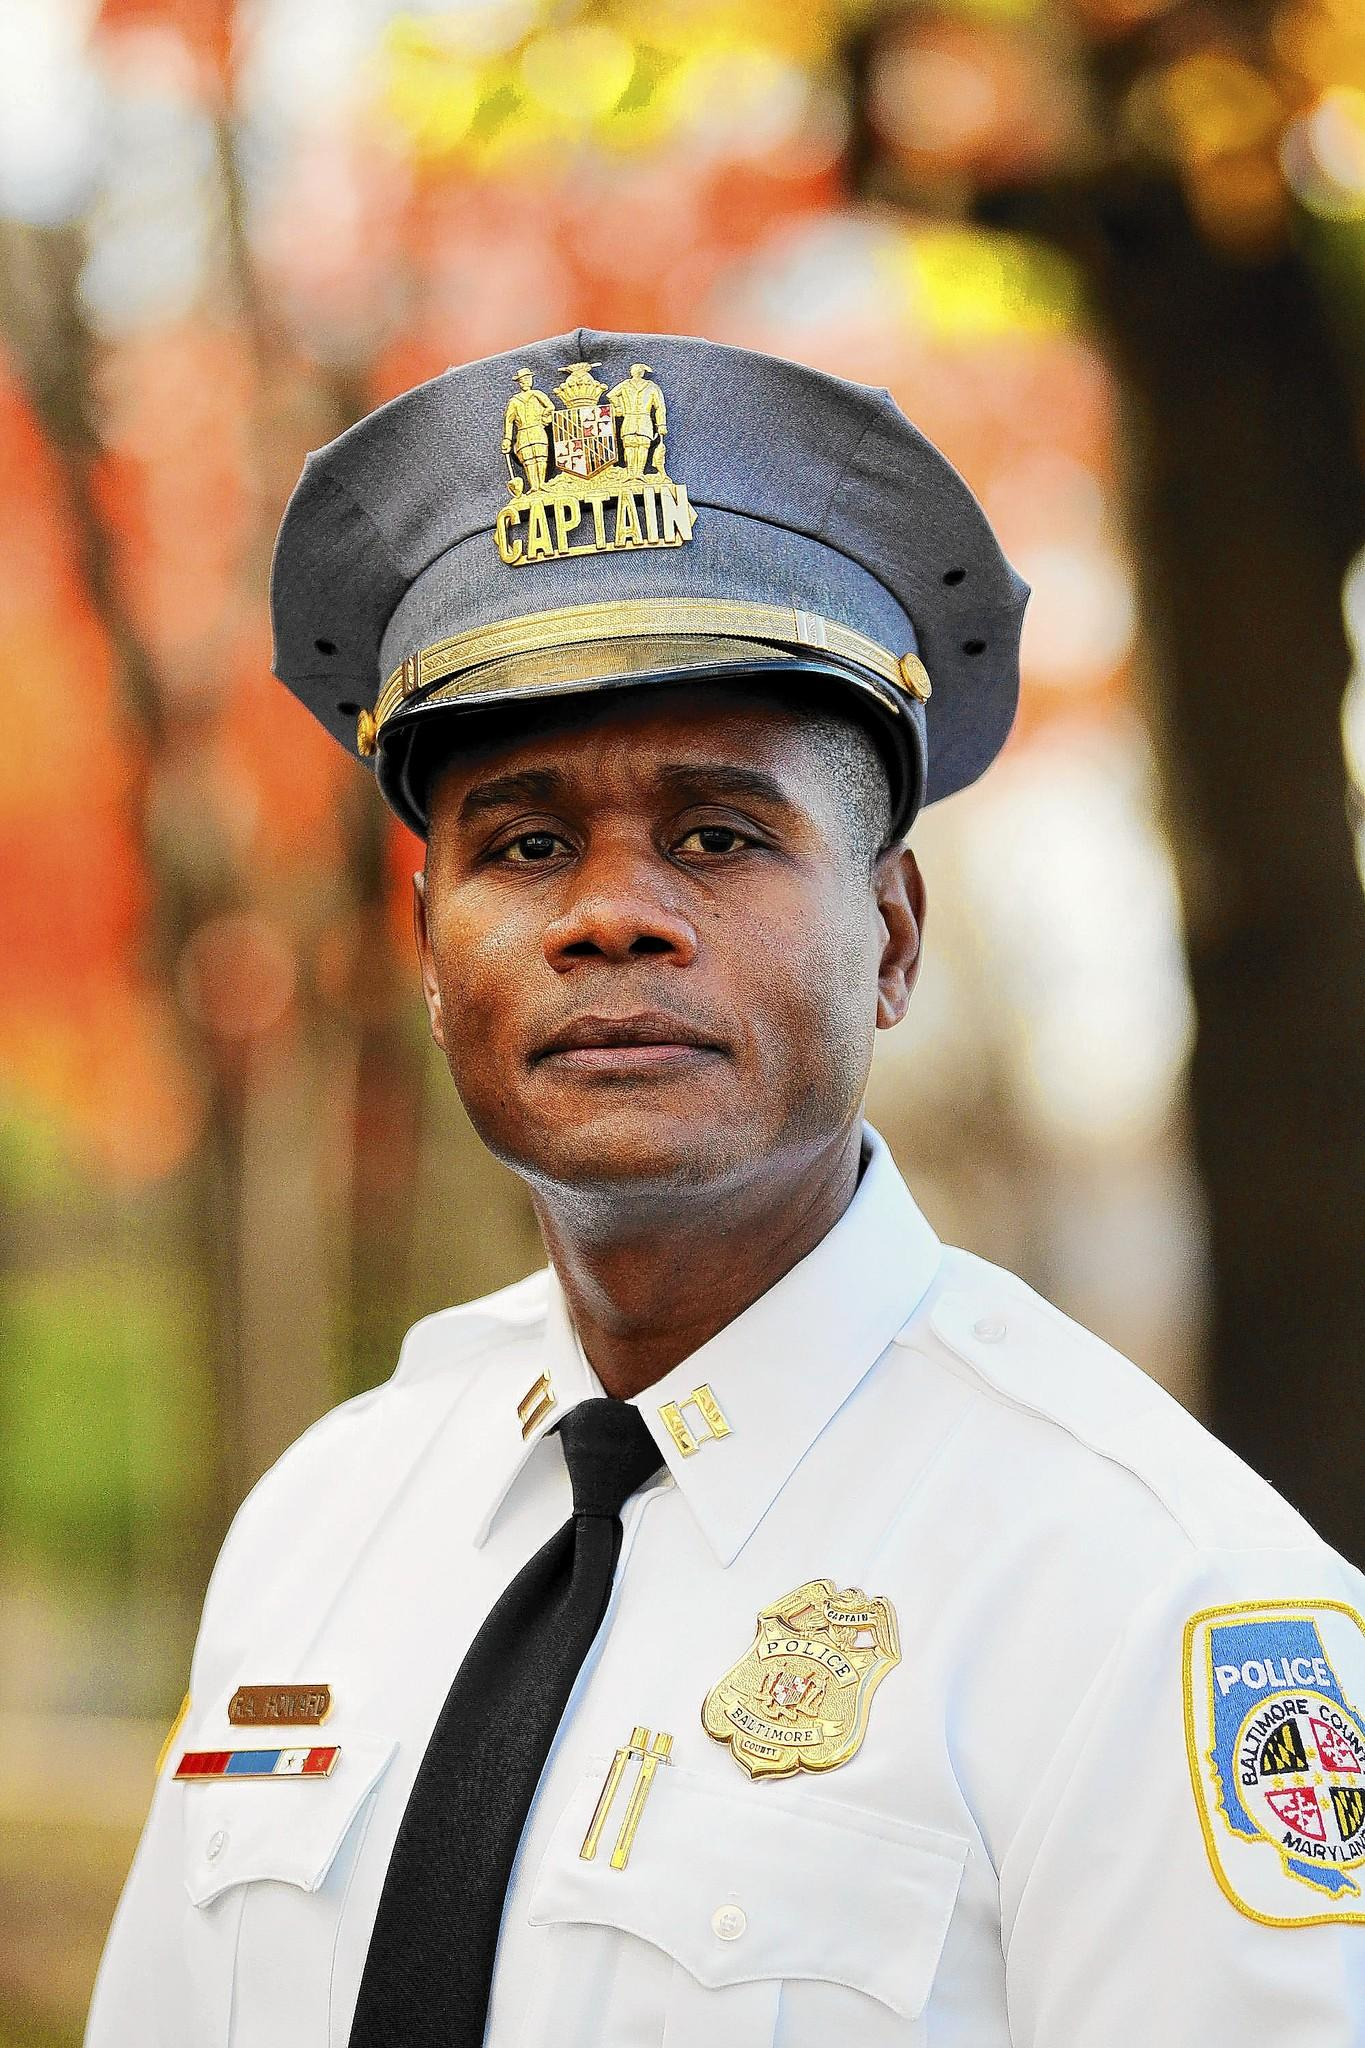 Towson Precinct Capt. Richard Howard urged residents during a meeting of the Greater Towson Council of Community Associations on Thursday evening to be vigilant about securing their homes and watching neighbors' houses because there has been a rise in daytime burglaries in the area recently.